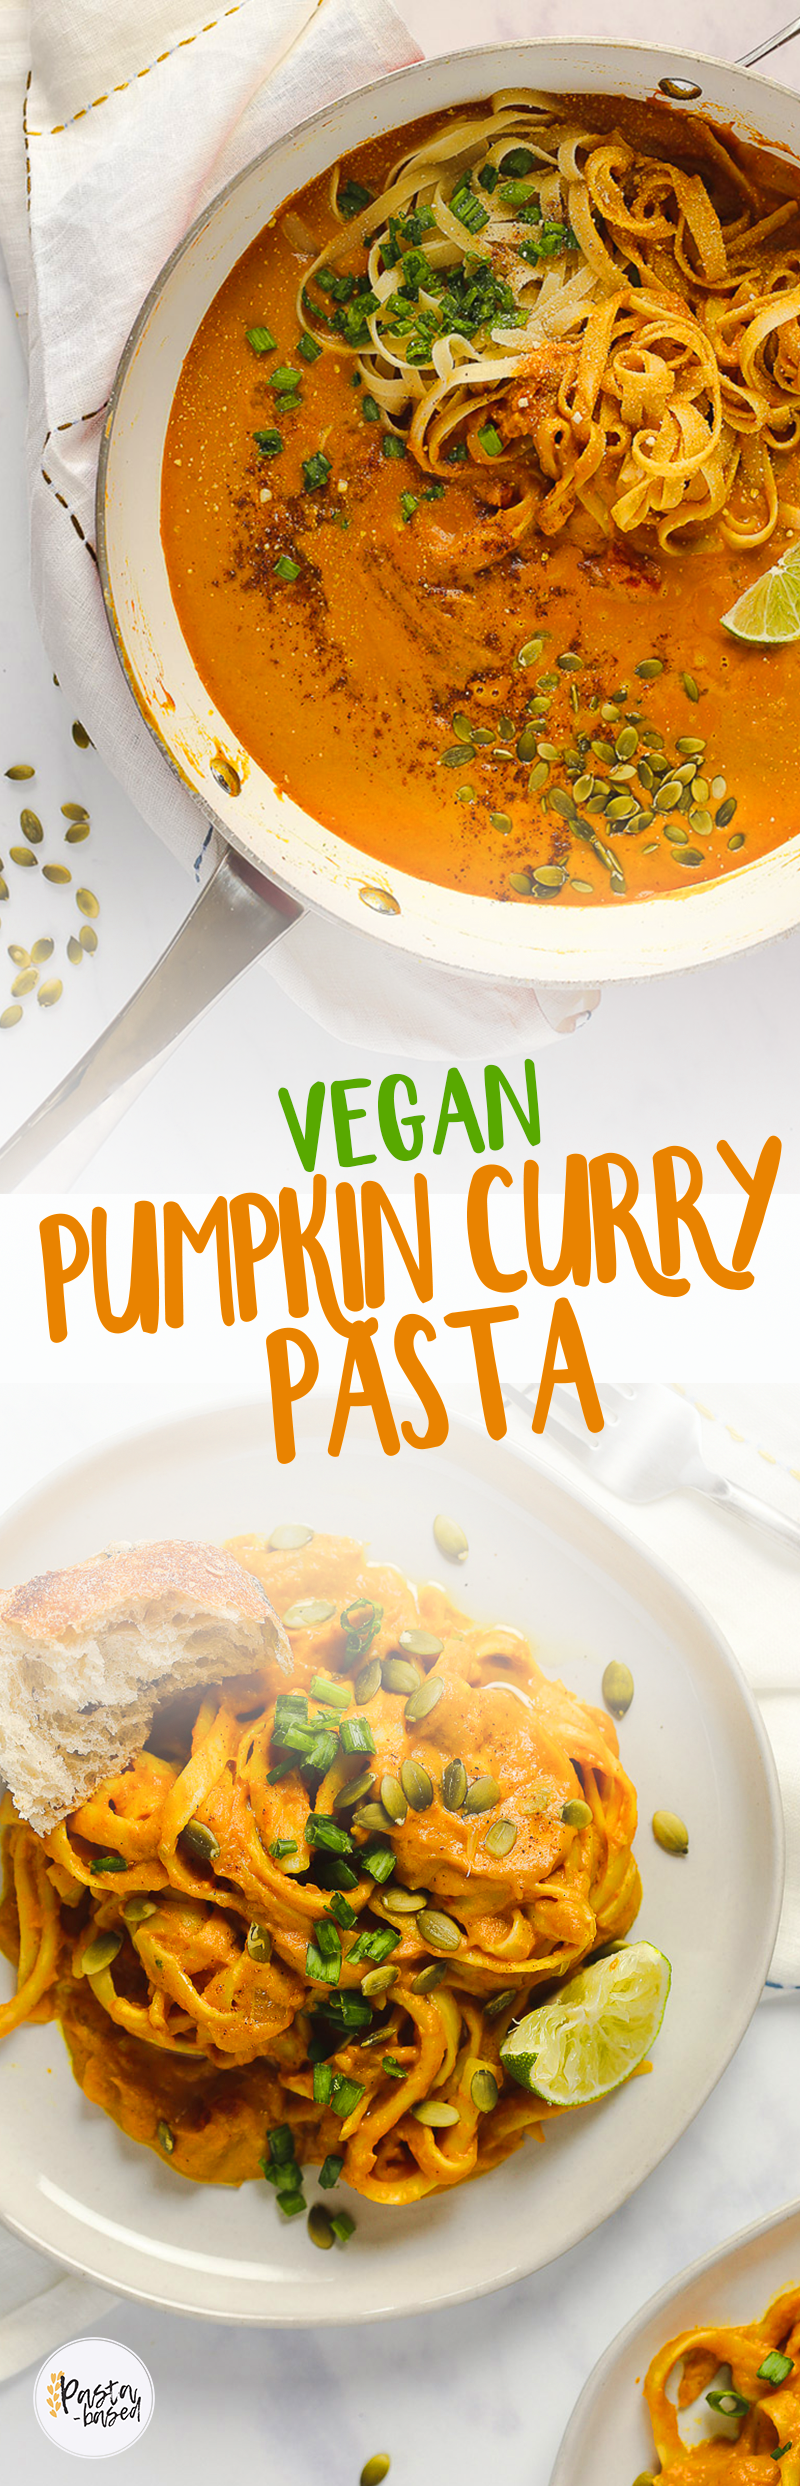 This Vegan Pumpkin Curry Pasta uses less than 10 ingredients and comes together in 15 minutes. Easy. Creamy. Cozy. Warm. Flavorful.